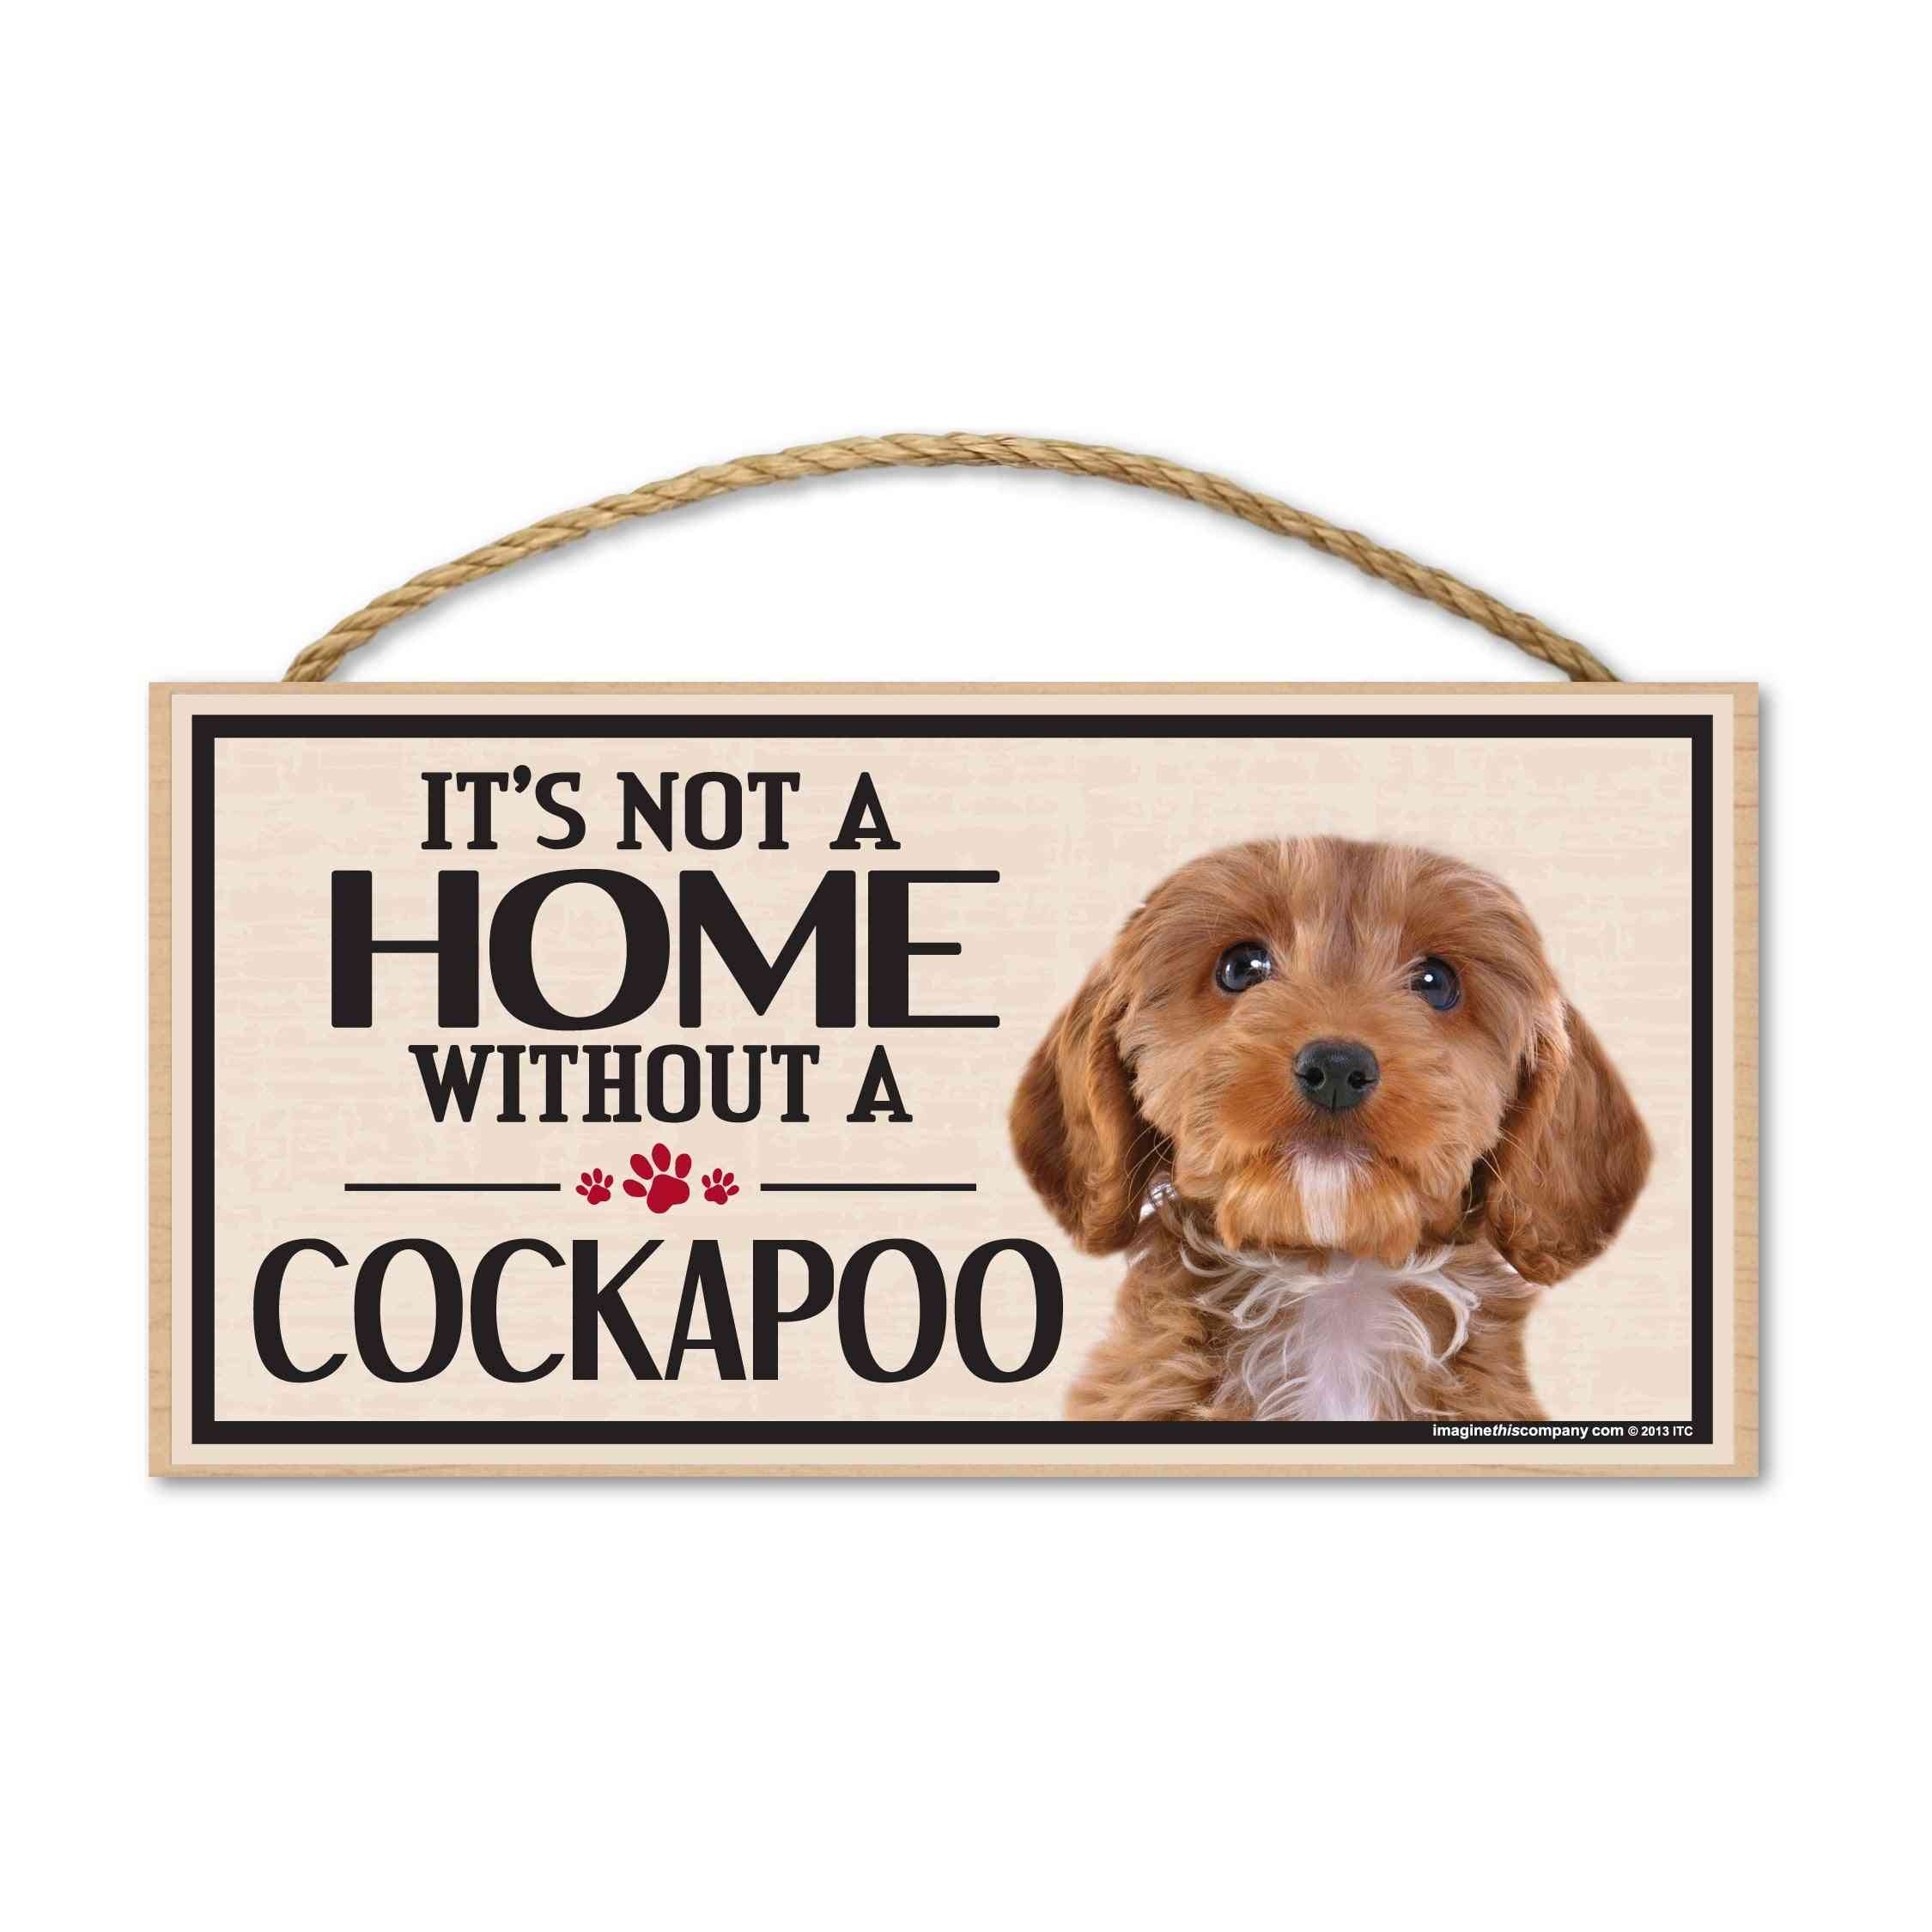 Sign, Wood, It's Not A Home Without A Cockapoo, 10